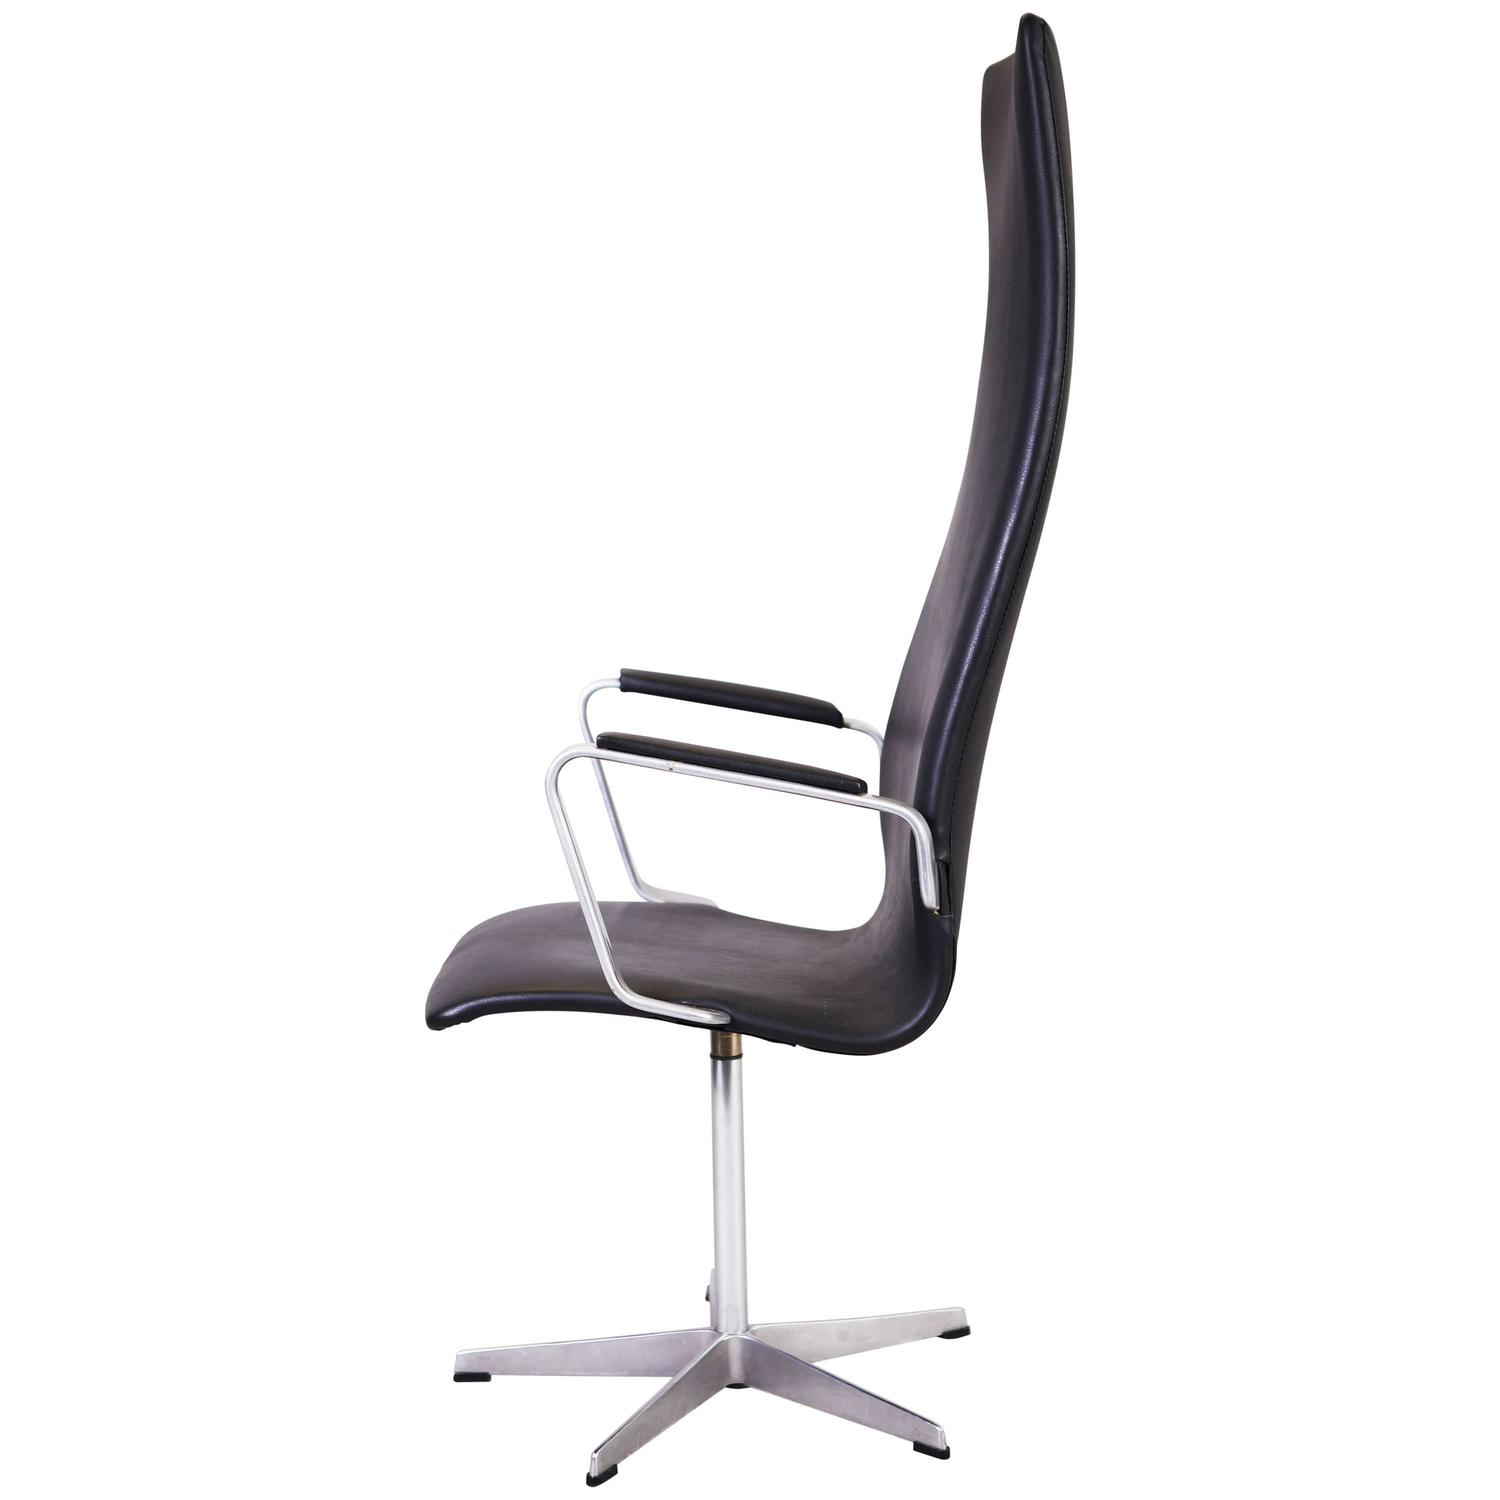 Oxford Chair By Arne Jacobsen For Fritz Hansen Circa 1965 For Sale At 1stdibs